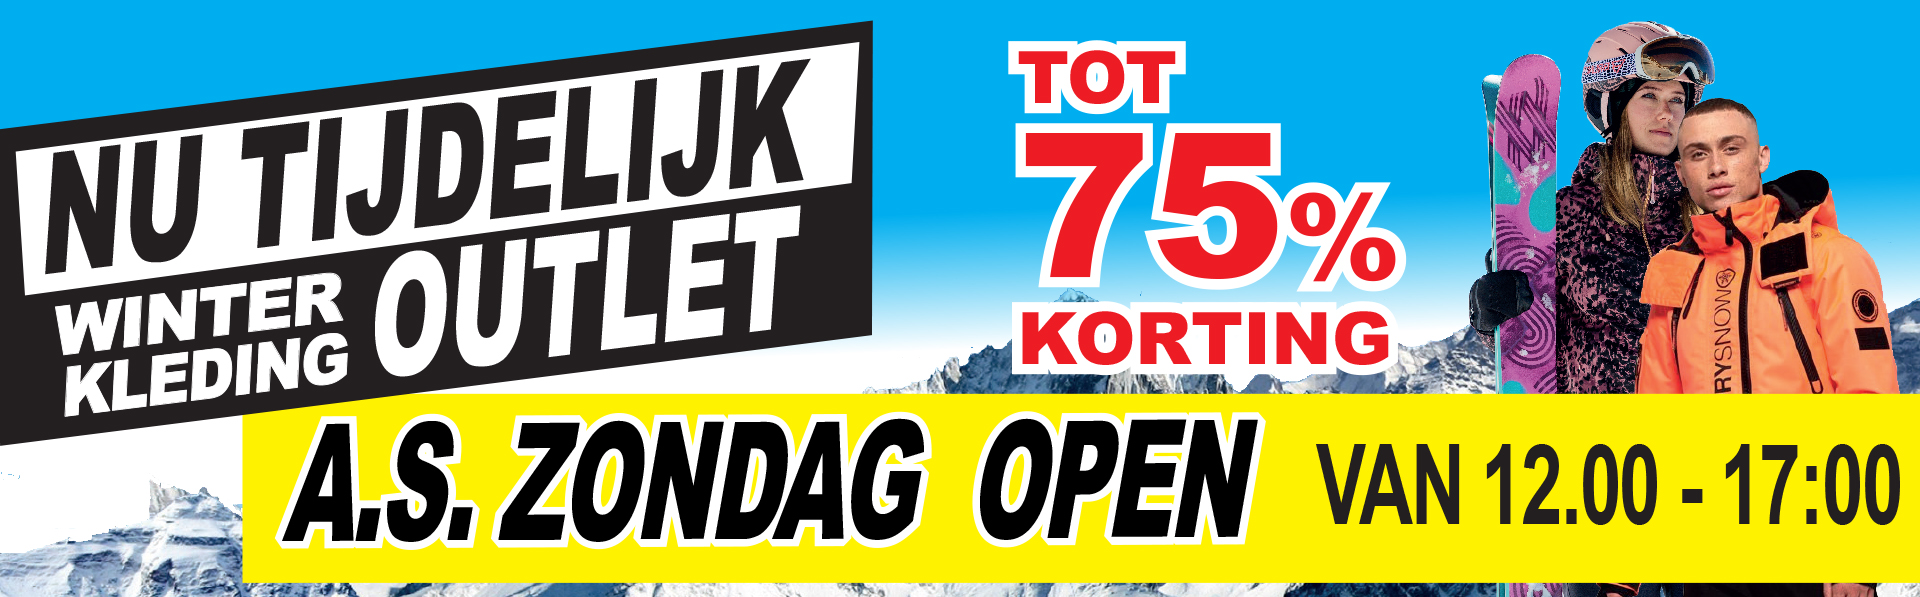 Wintersport Outlet